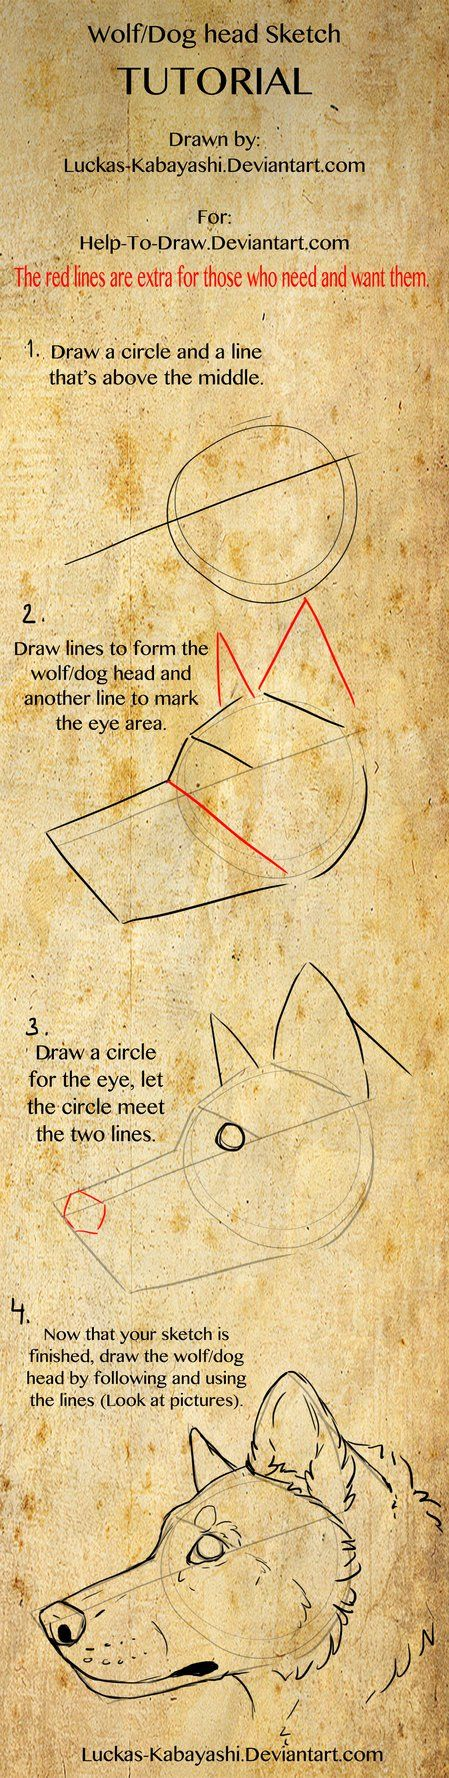 This is a way you can sketch you wolf/dog head, you can use more or less lines. Tutorial owned and made by: © Luckas-Kabayashi For more tutorials:luckas-kabayashi.deviantart.co…